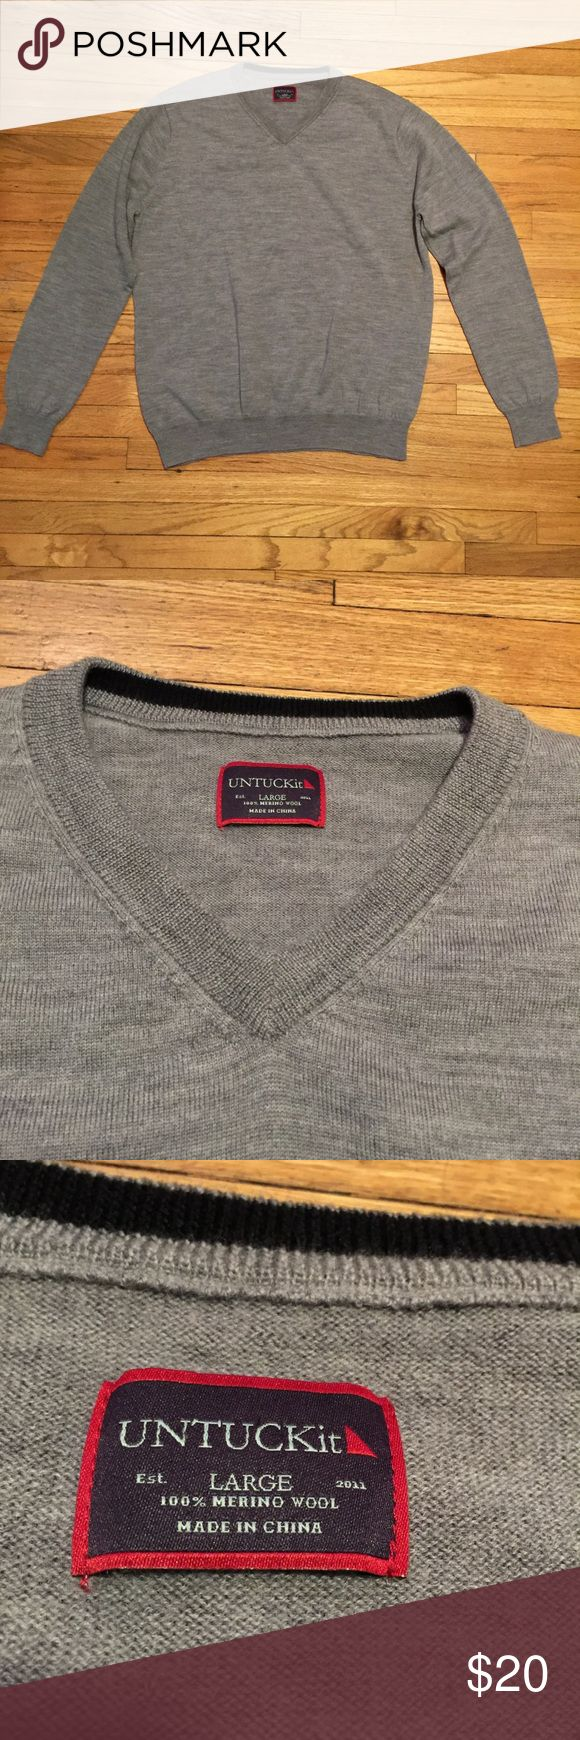 Untuckit gray men's v neck sweater - sz Large Untuckit gray men's v neck sweater - sz Large. Armpit to armpit - 23.5 inches. Length - 28 inches. untuckit Sweaters V-Neck